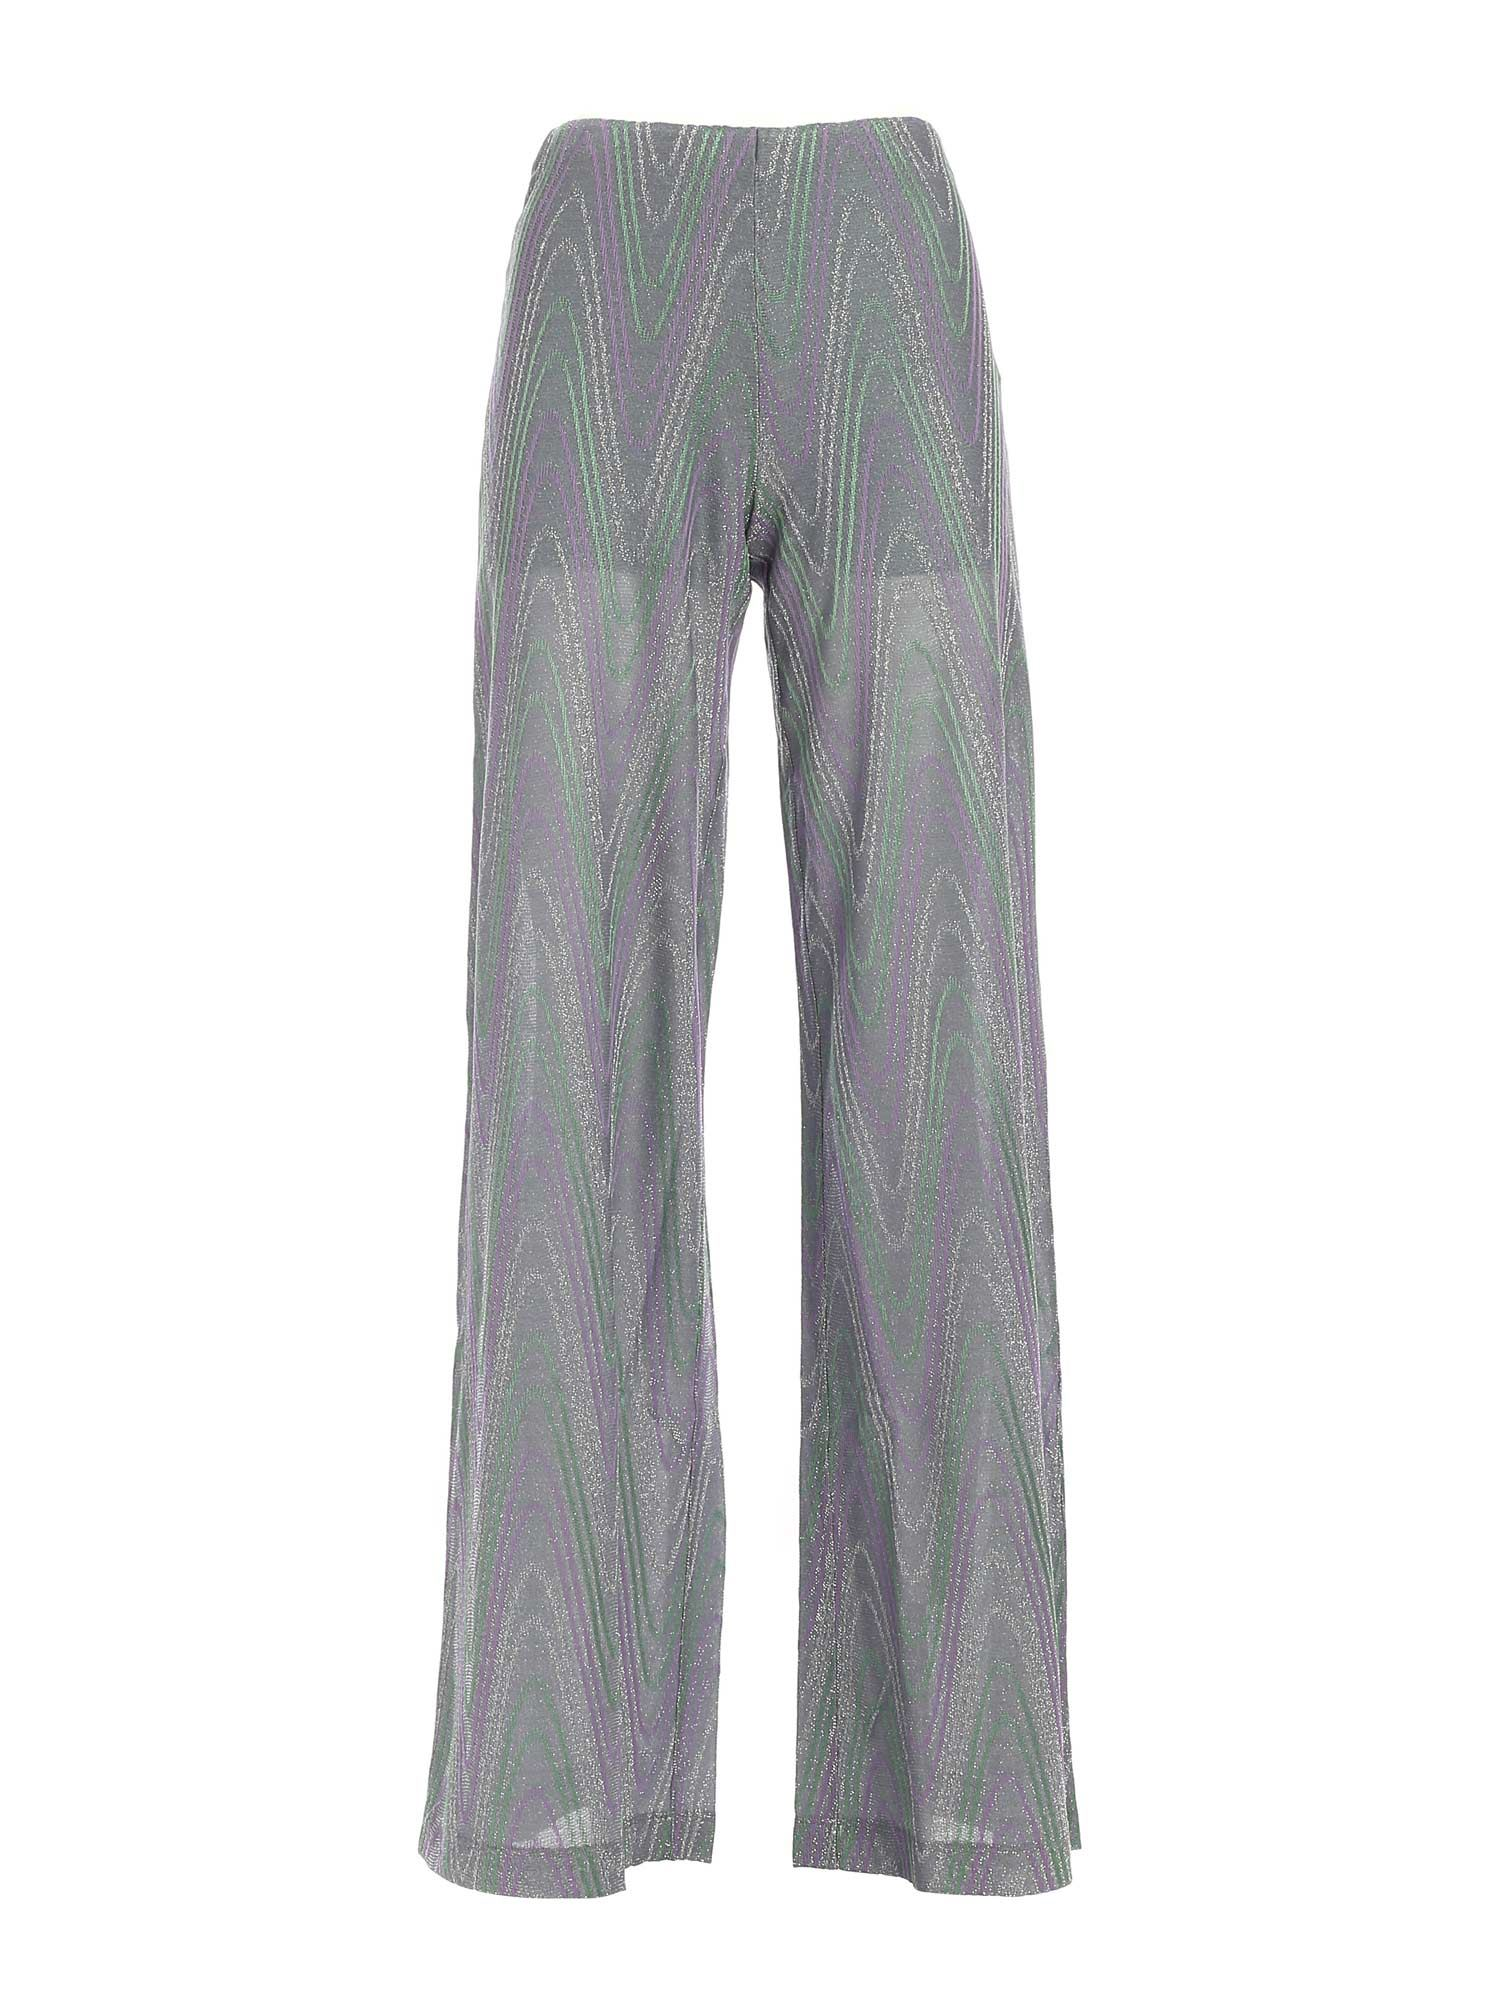 M Missoni LAMÉ KNITTED PANTS IN GREEN AND PURPLE